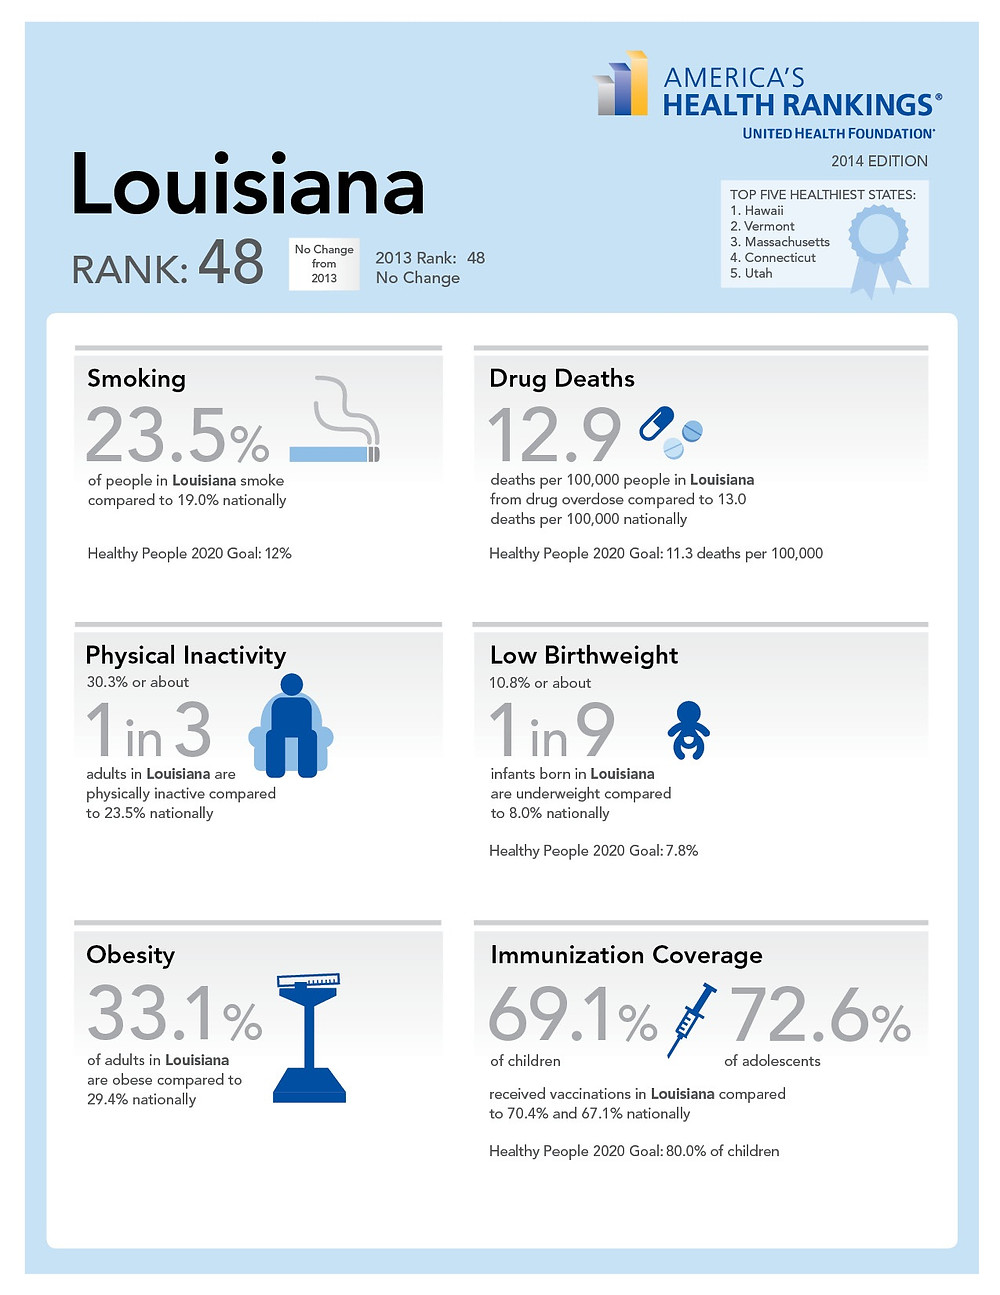 Louisiana-Health-Infographic-2014.jpg